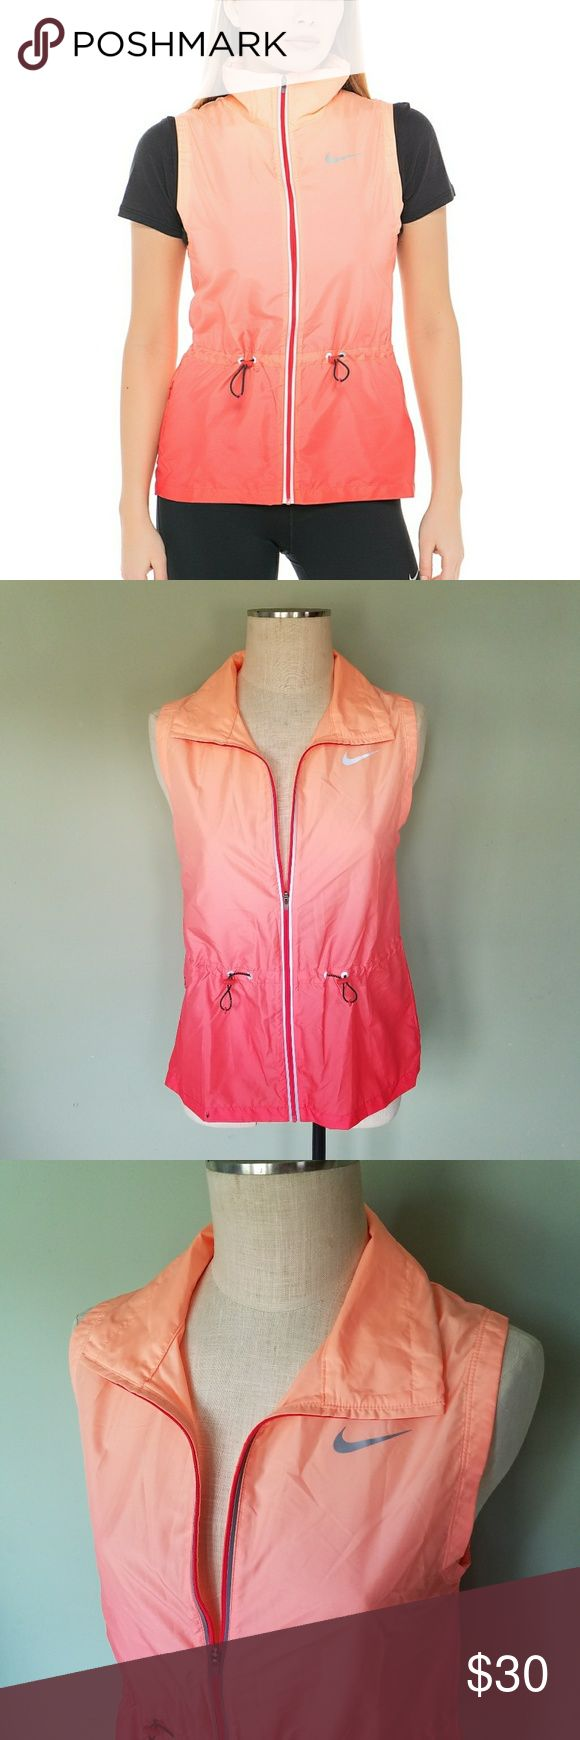 "Nike Ombre Gradient Wind Resistant Dri-Fit Vest Nike.  Size Medium.  Wind breaker vest.  ""For a relaxed look, invest in Nike's sleeveless, wind-resistant Dri-Fit vest jacket. This orange ombré design is accented with drawstring cords at the waist and reflective accents."" Zip up front.  Peach/coral/orange/pink Perfect condition! Nike Jackets & Coats Vests"